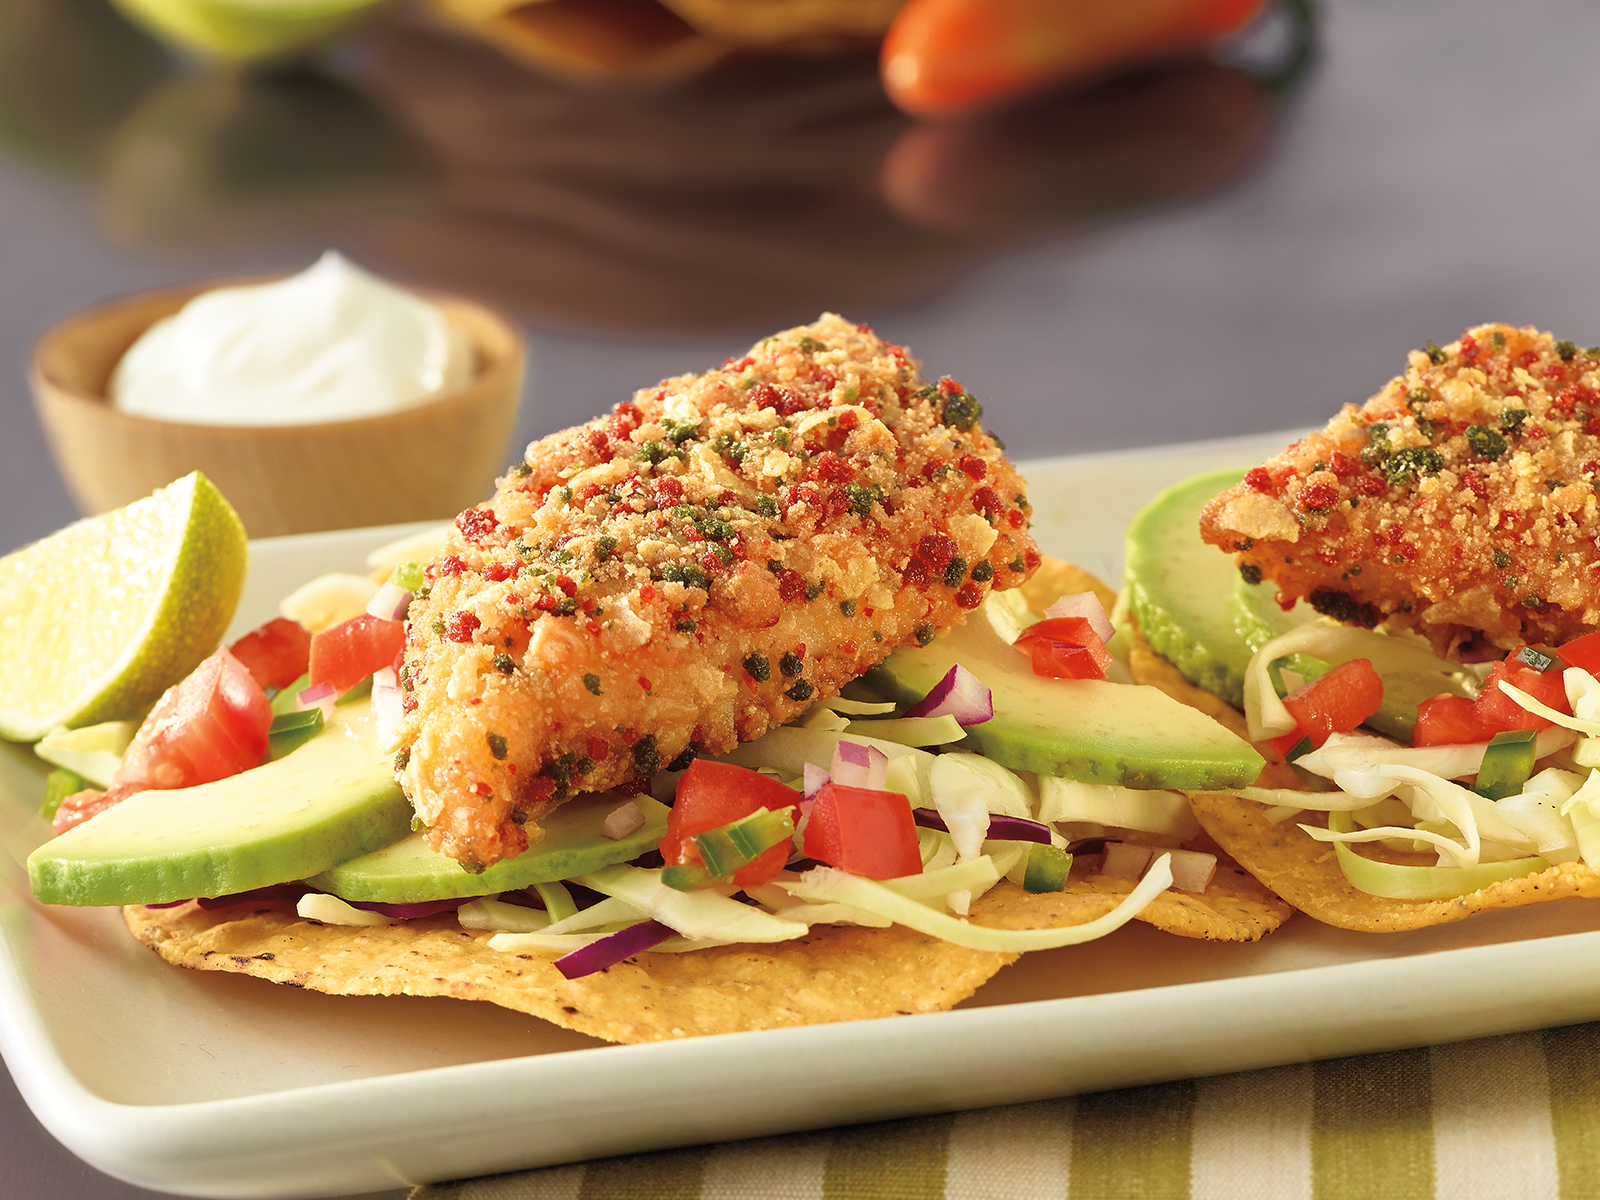 Tortilla Encrusted Wild Alaska Pollock Portions 1-2 oz Raw Breaded 420473